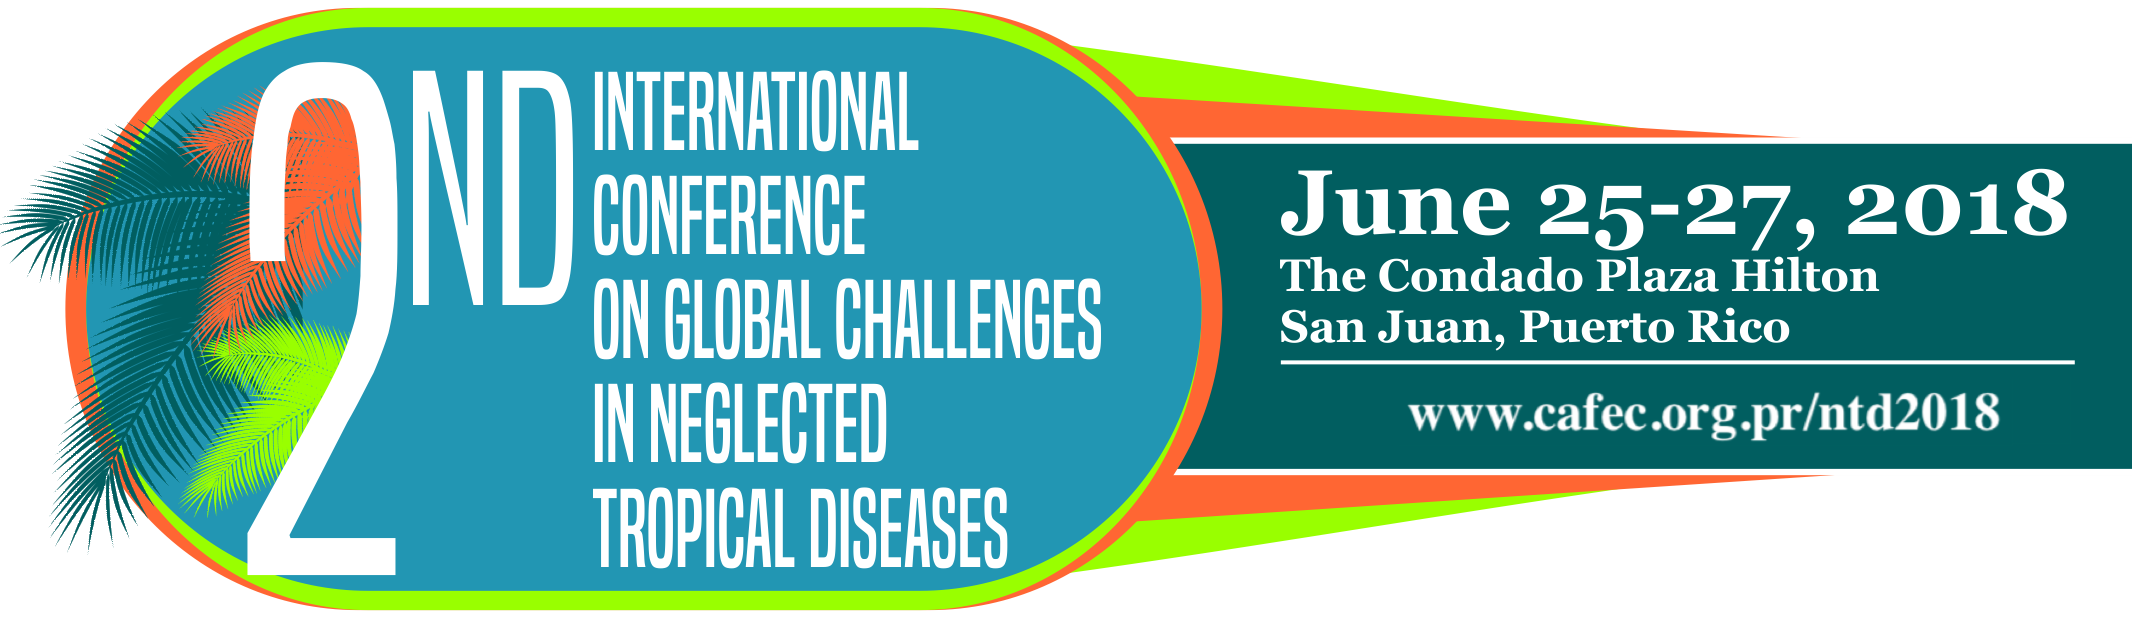 2nd International Conference on Global Challenges in Neglected Tropical Diseases